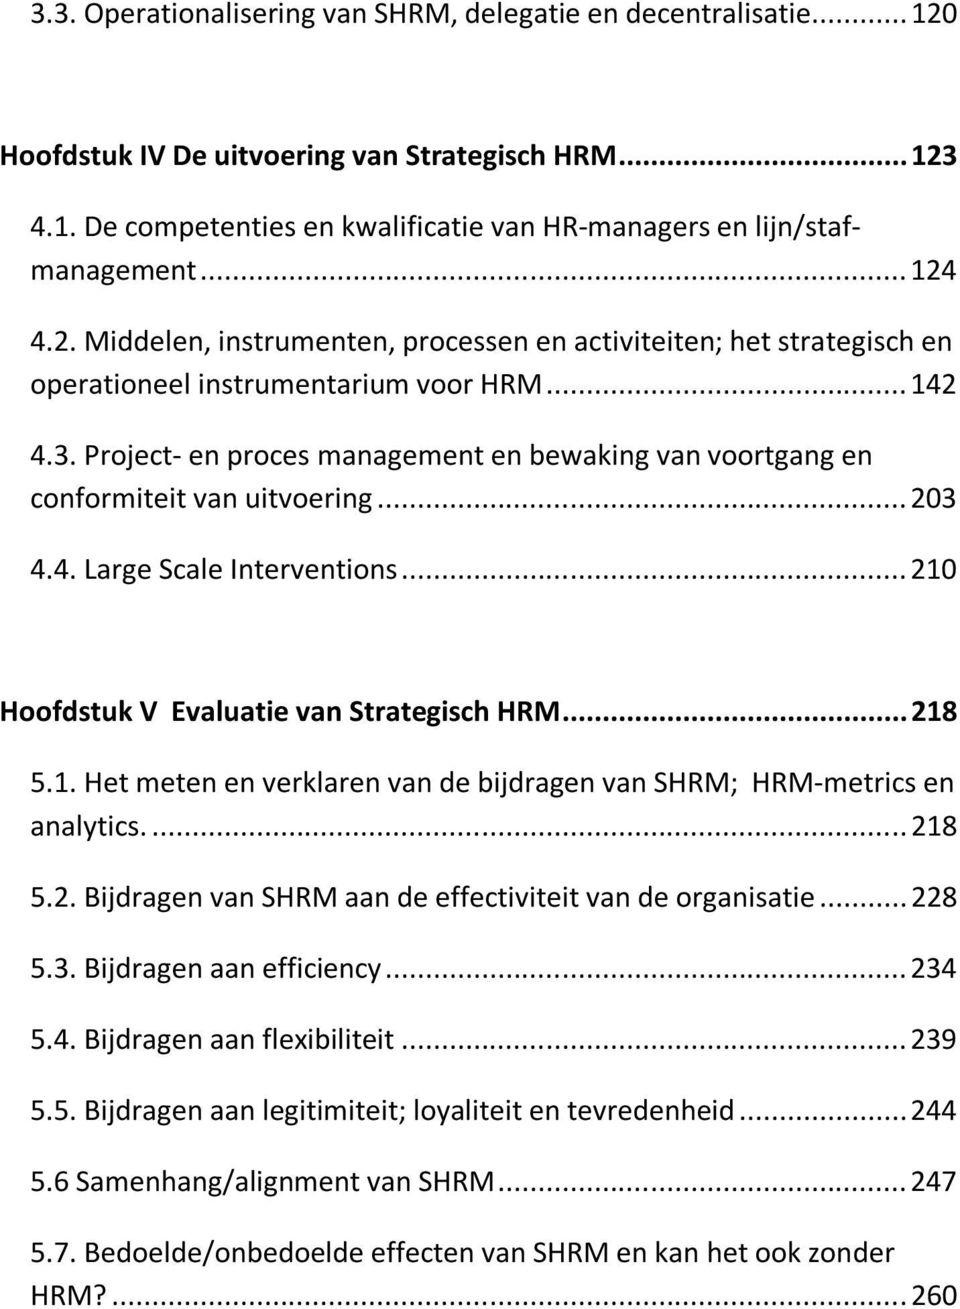 Project- en proces management en bewaking van voortgang en conformiteit van uitvoering...203 4.4. Large Scale Interventions...210